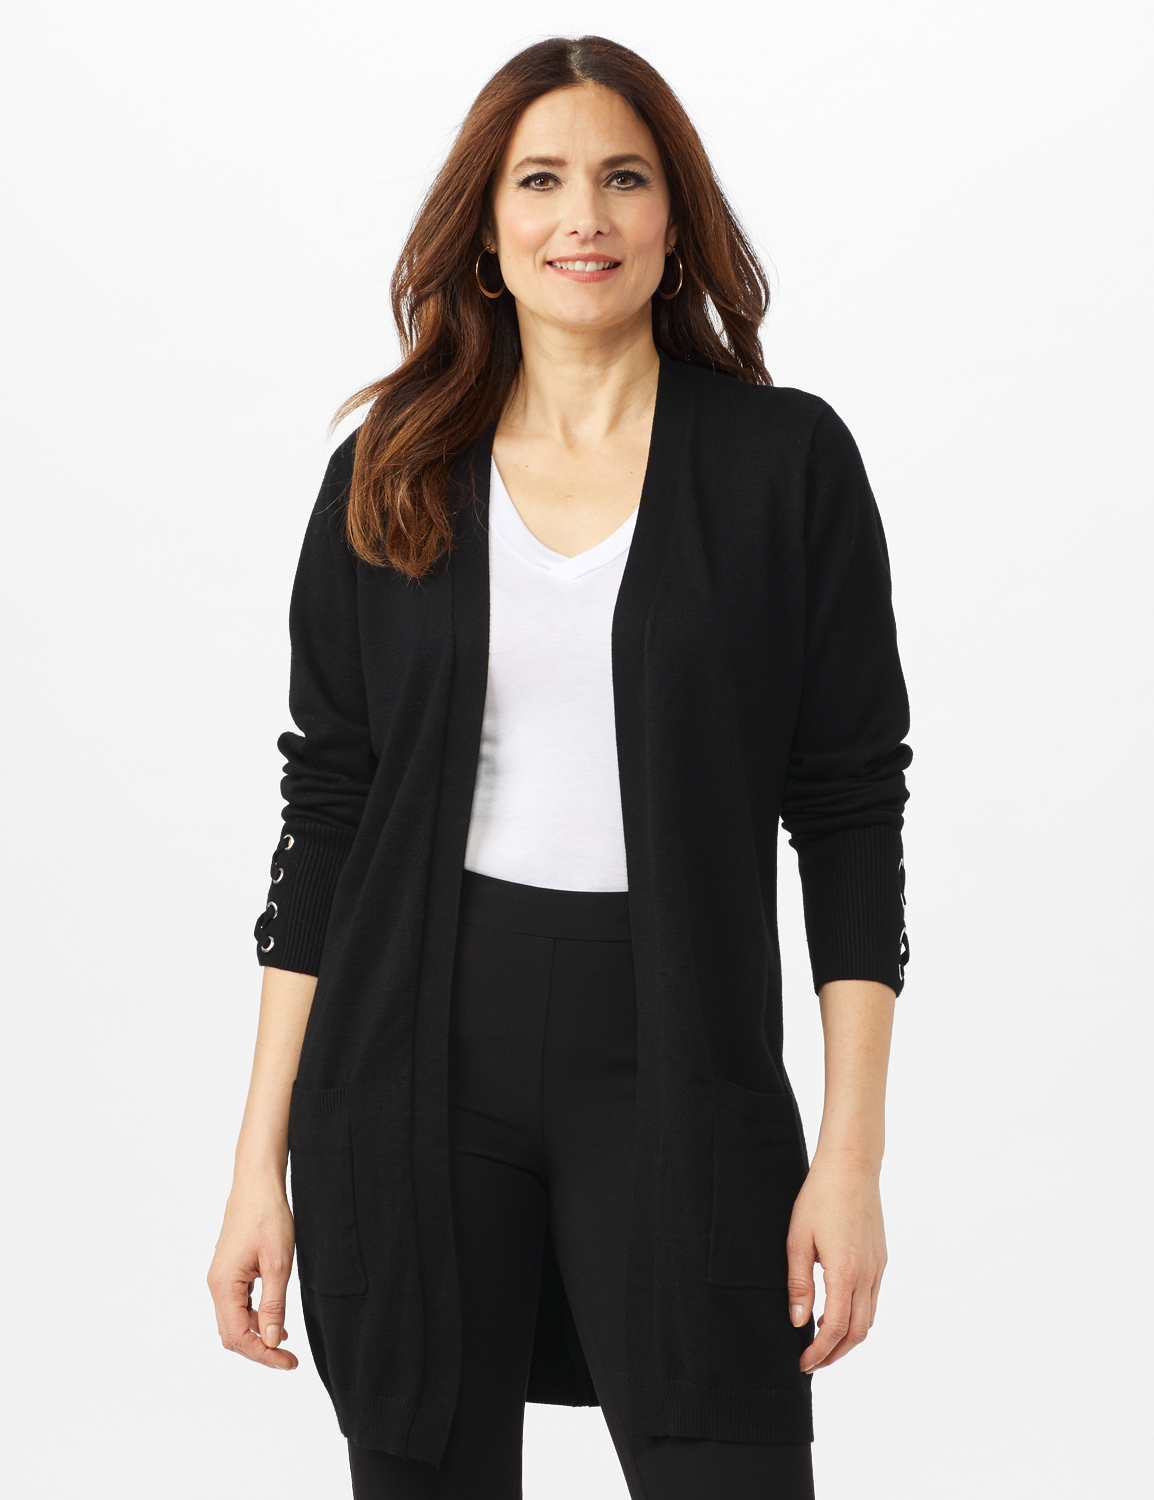 Grommet Lace-Up Trim Open Cardigan - Black - Front